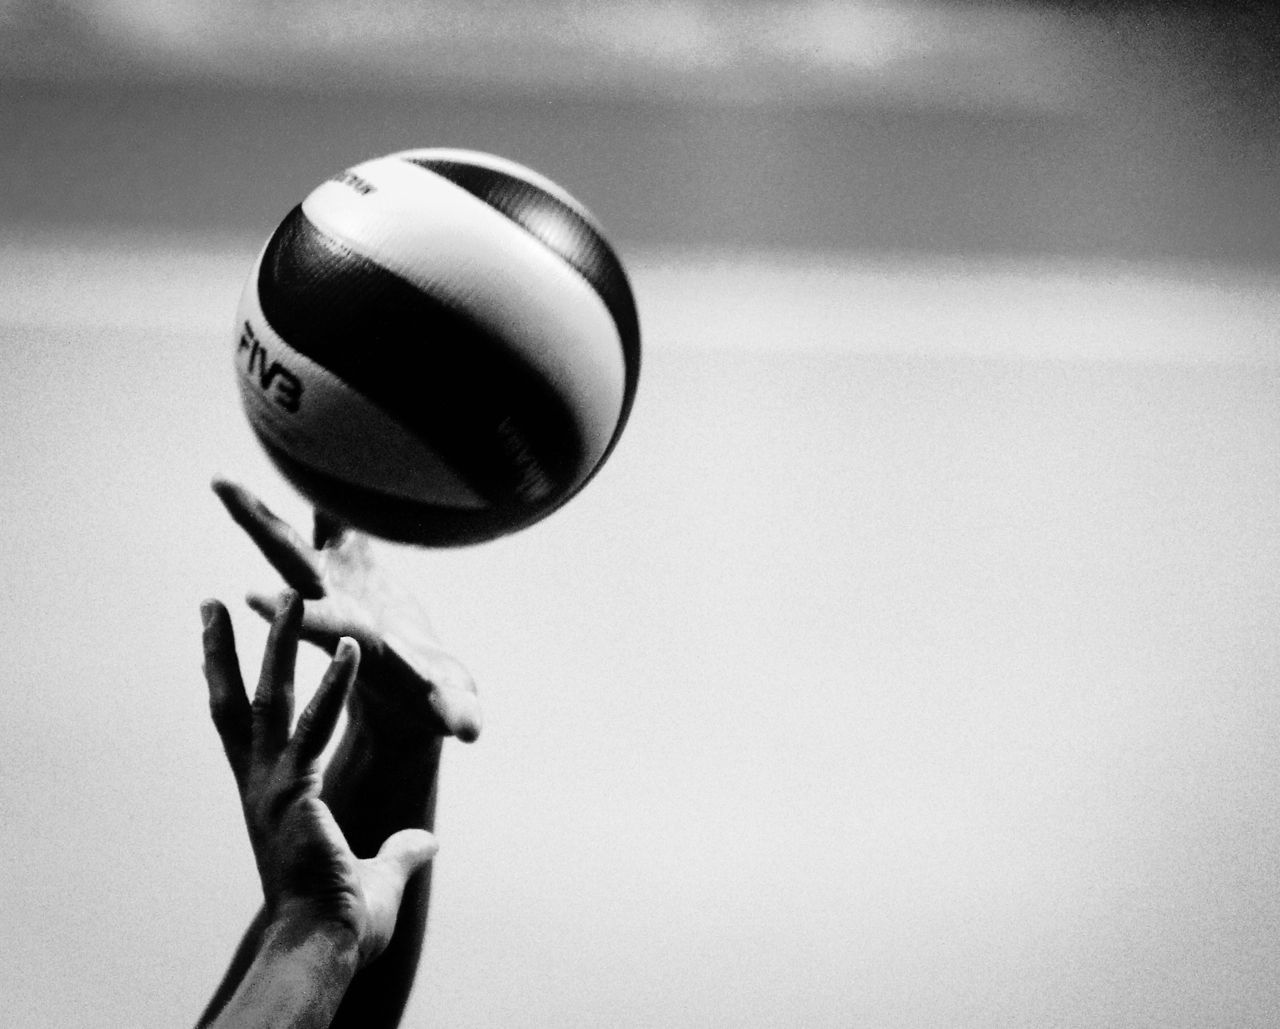 Volleyball Wallpaper Fondo De Pantalla De Voleibol Voley Voleibol